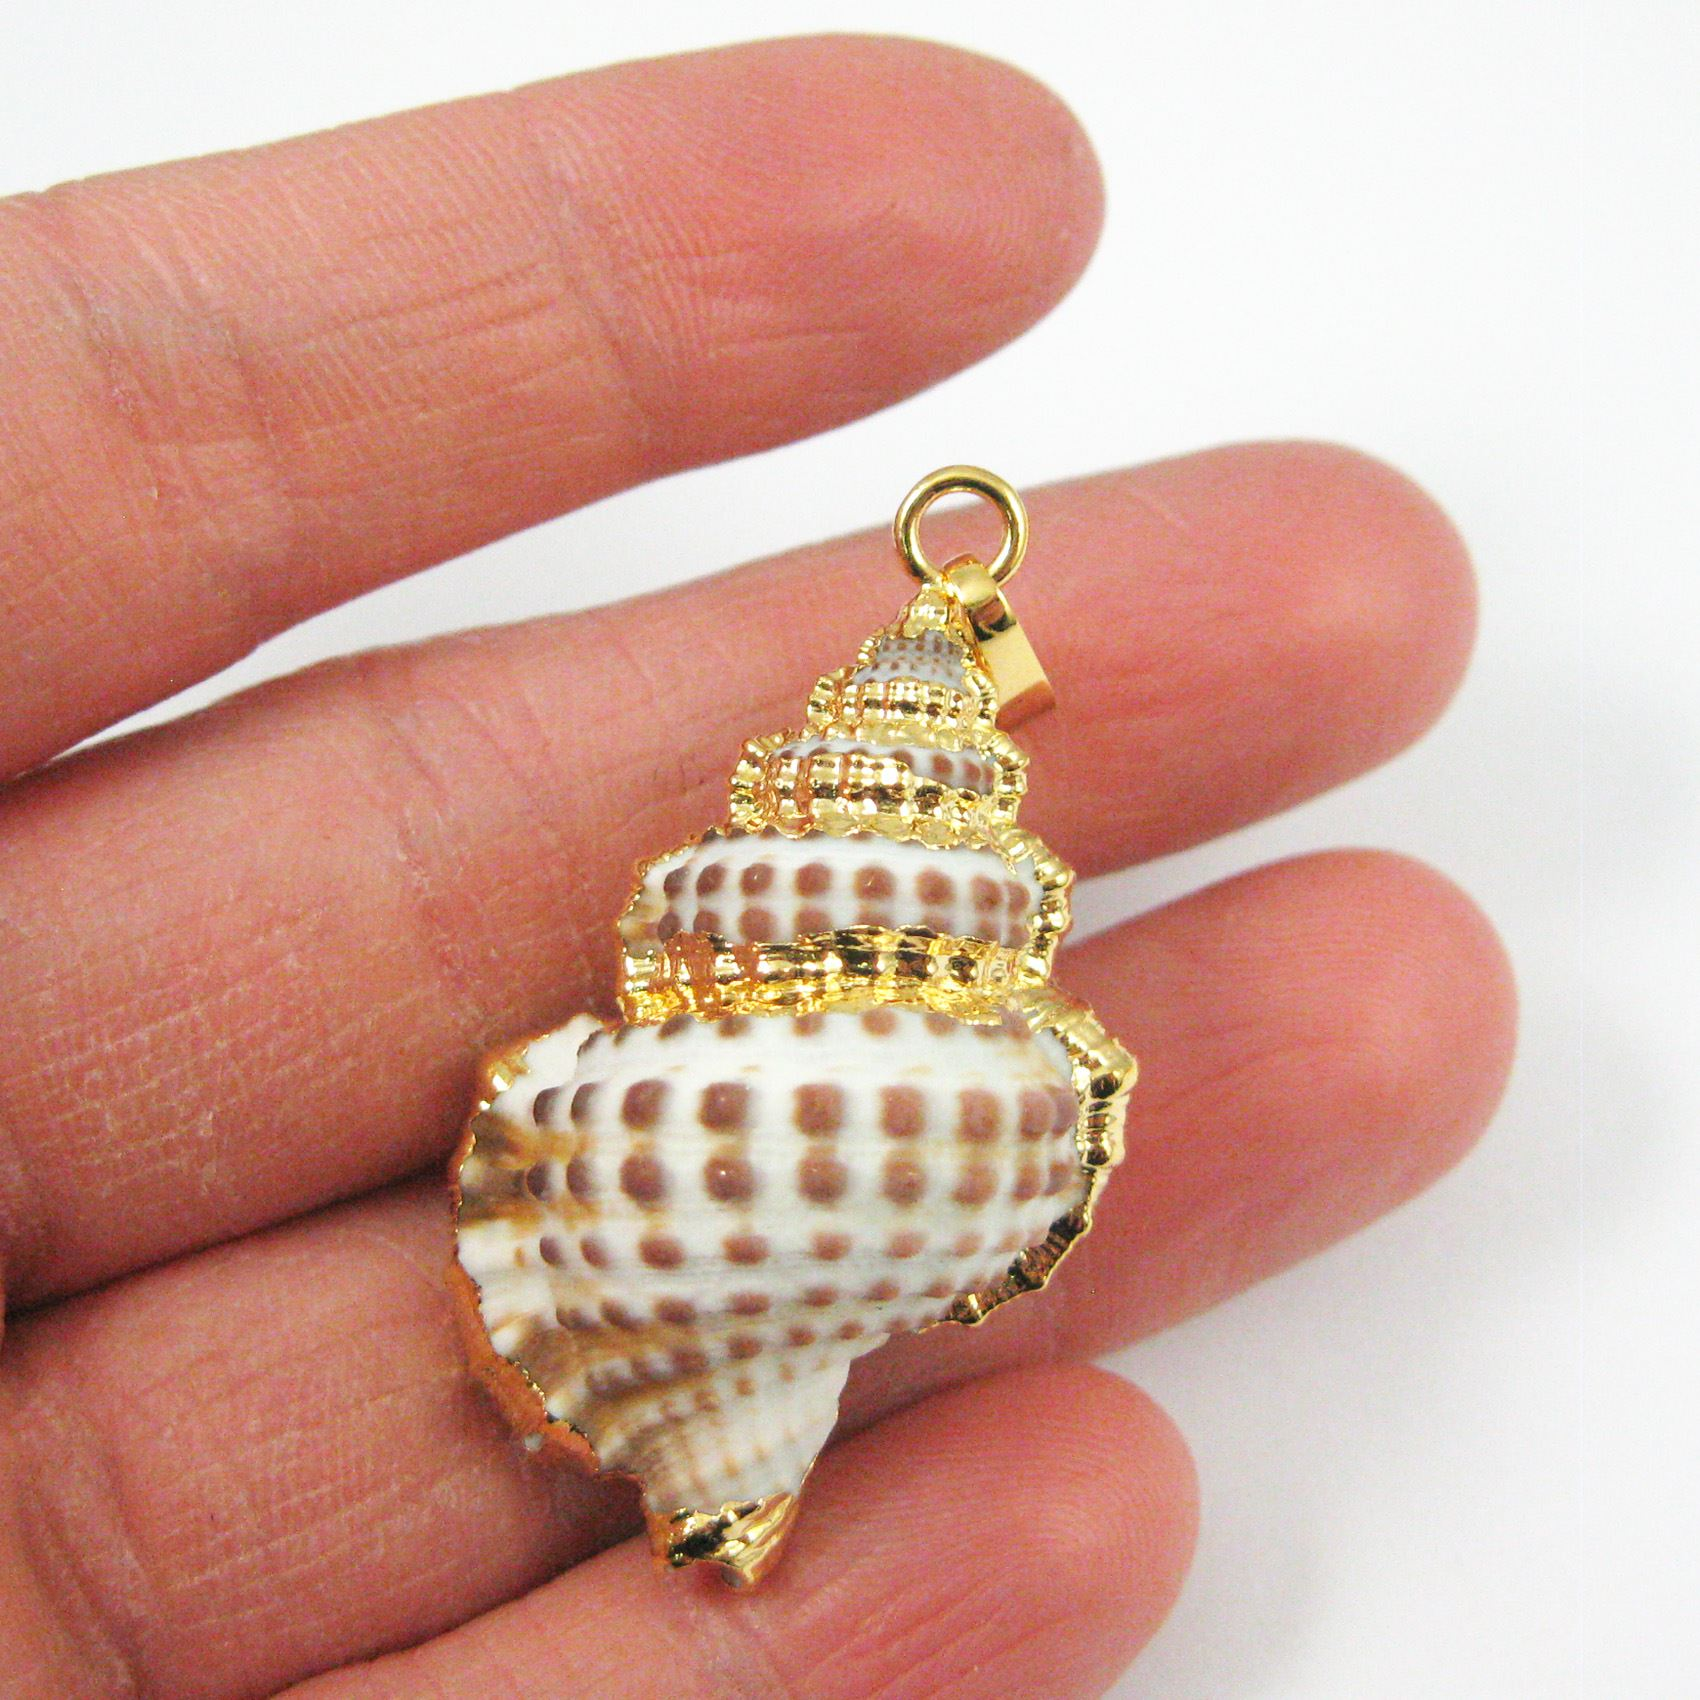 Genuine Shell Pendant, Ribbed Cantharus Gold Wrapped Shell Pendant, Natural Shaded Shell with Gold Wrapping